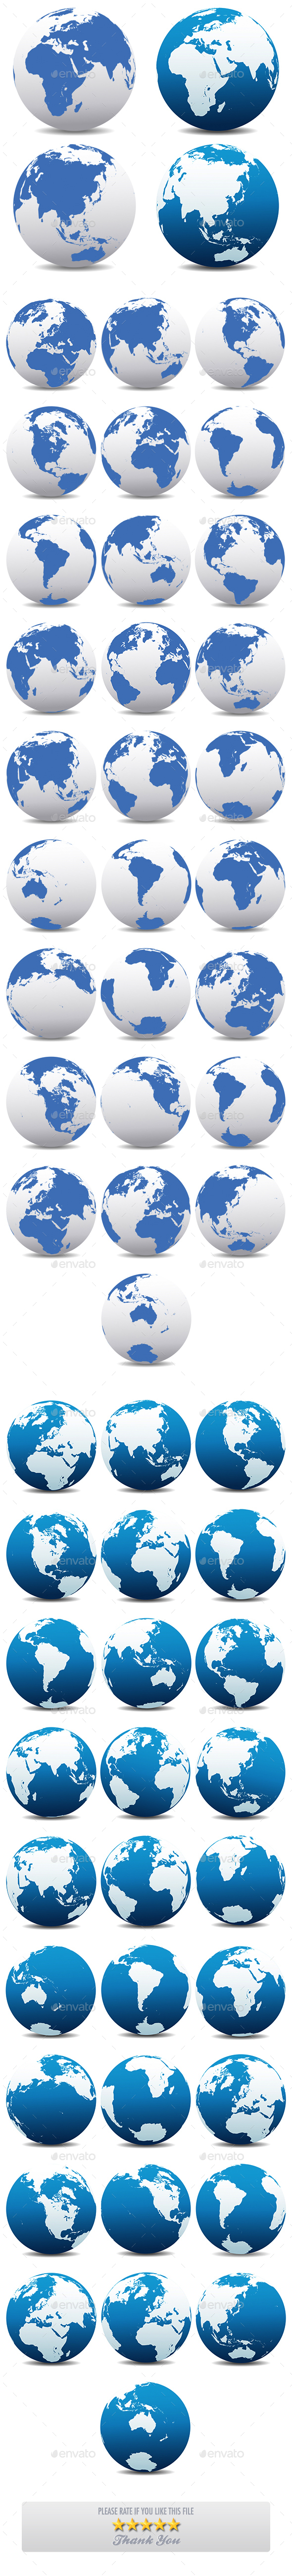 World and Globes Earth Collection Pack of 30 x Two Types - Conceptual Vectors